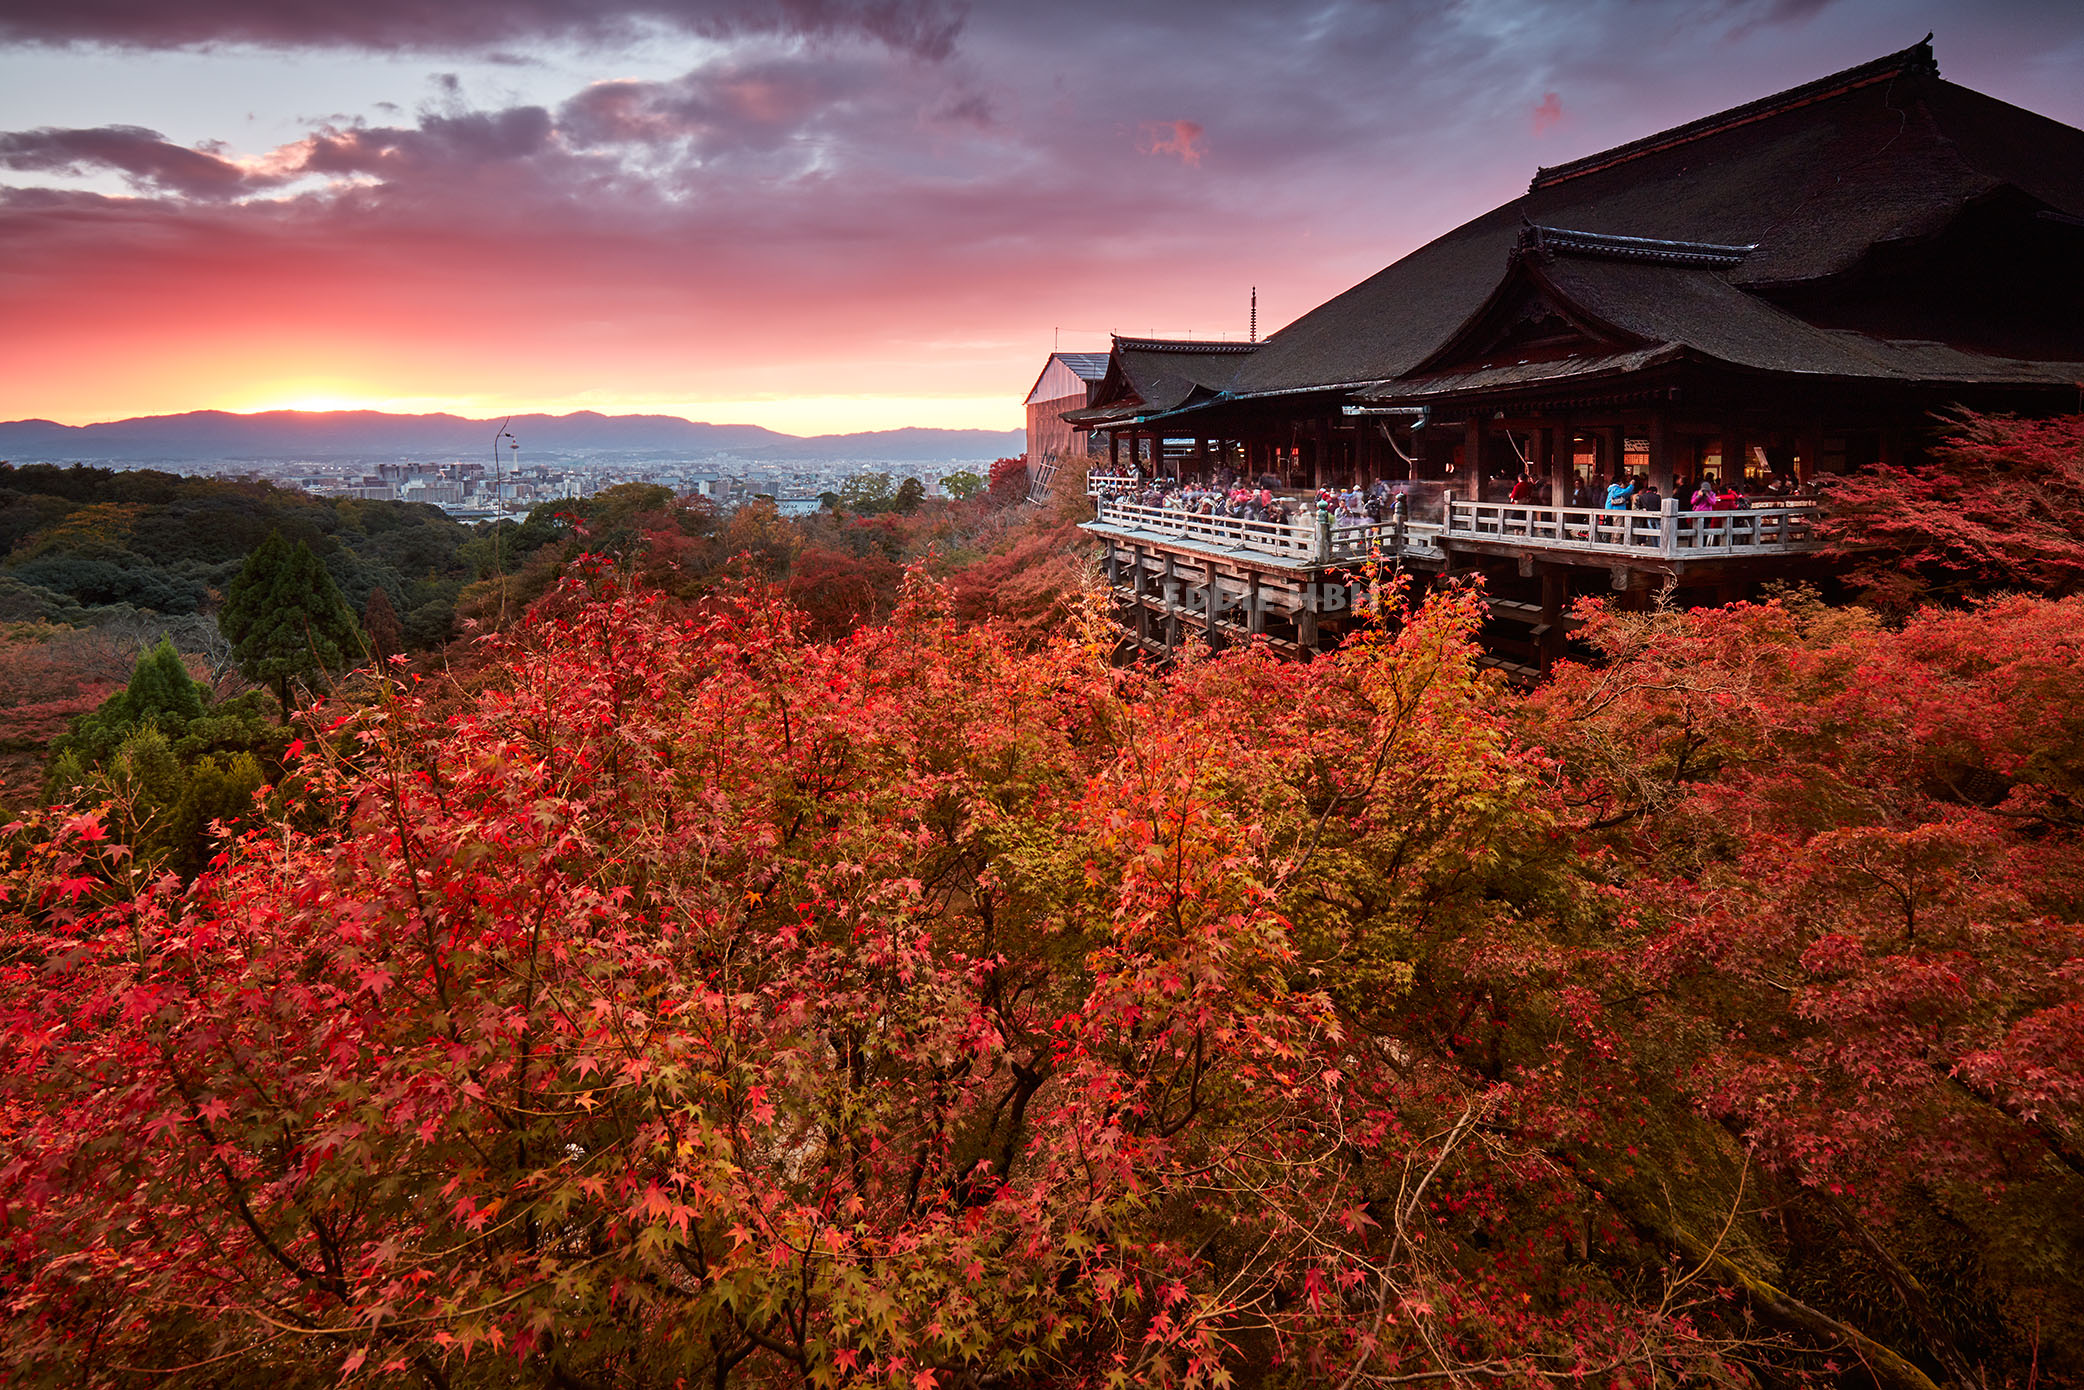 Sunset on Kiyomizudera, the temple of pure water